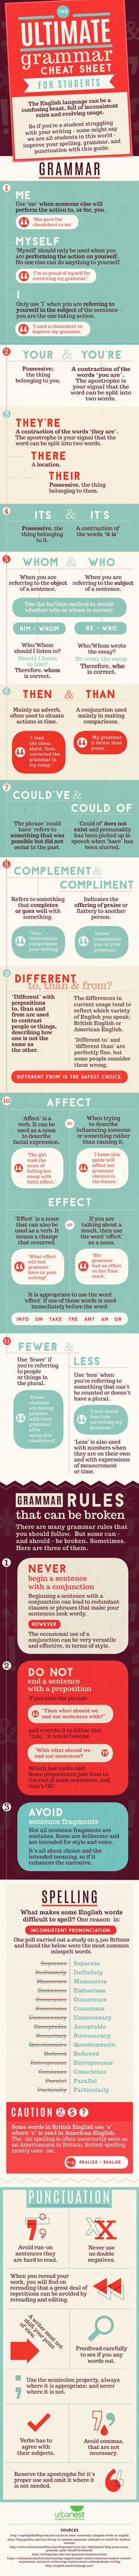 Great grammar cheat sheet for bloggers, students, teachers (so you don't mess up those newsletters again), and any other random person who wants to look edumicated. ;)